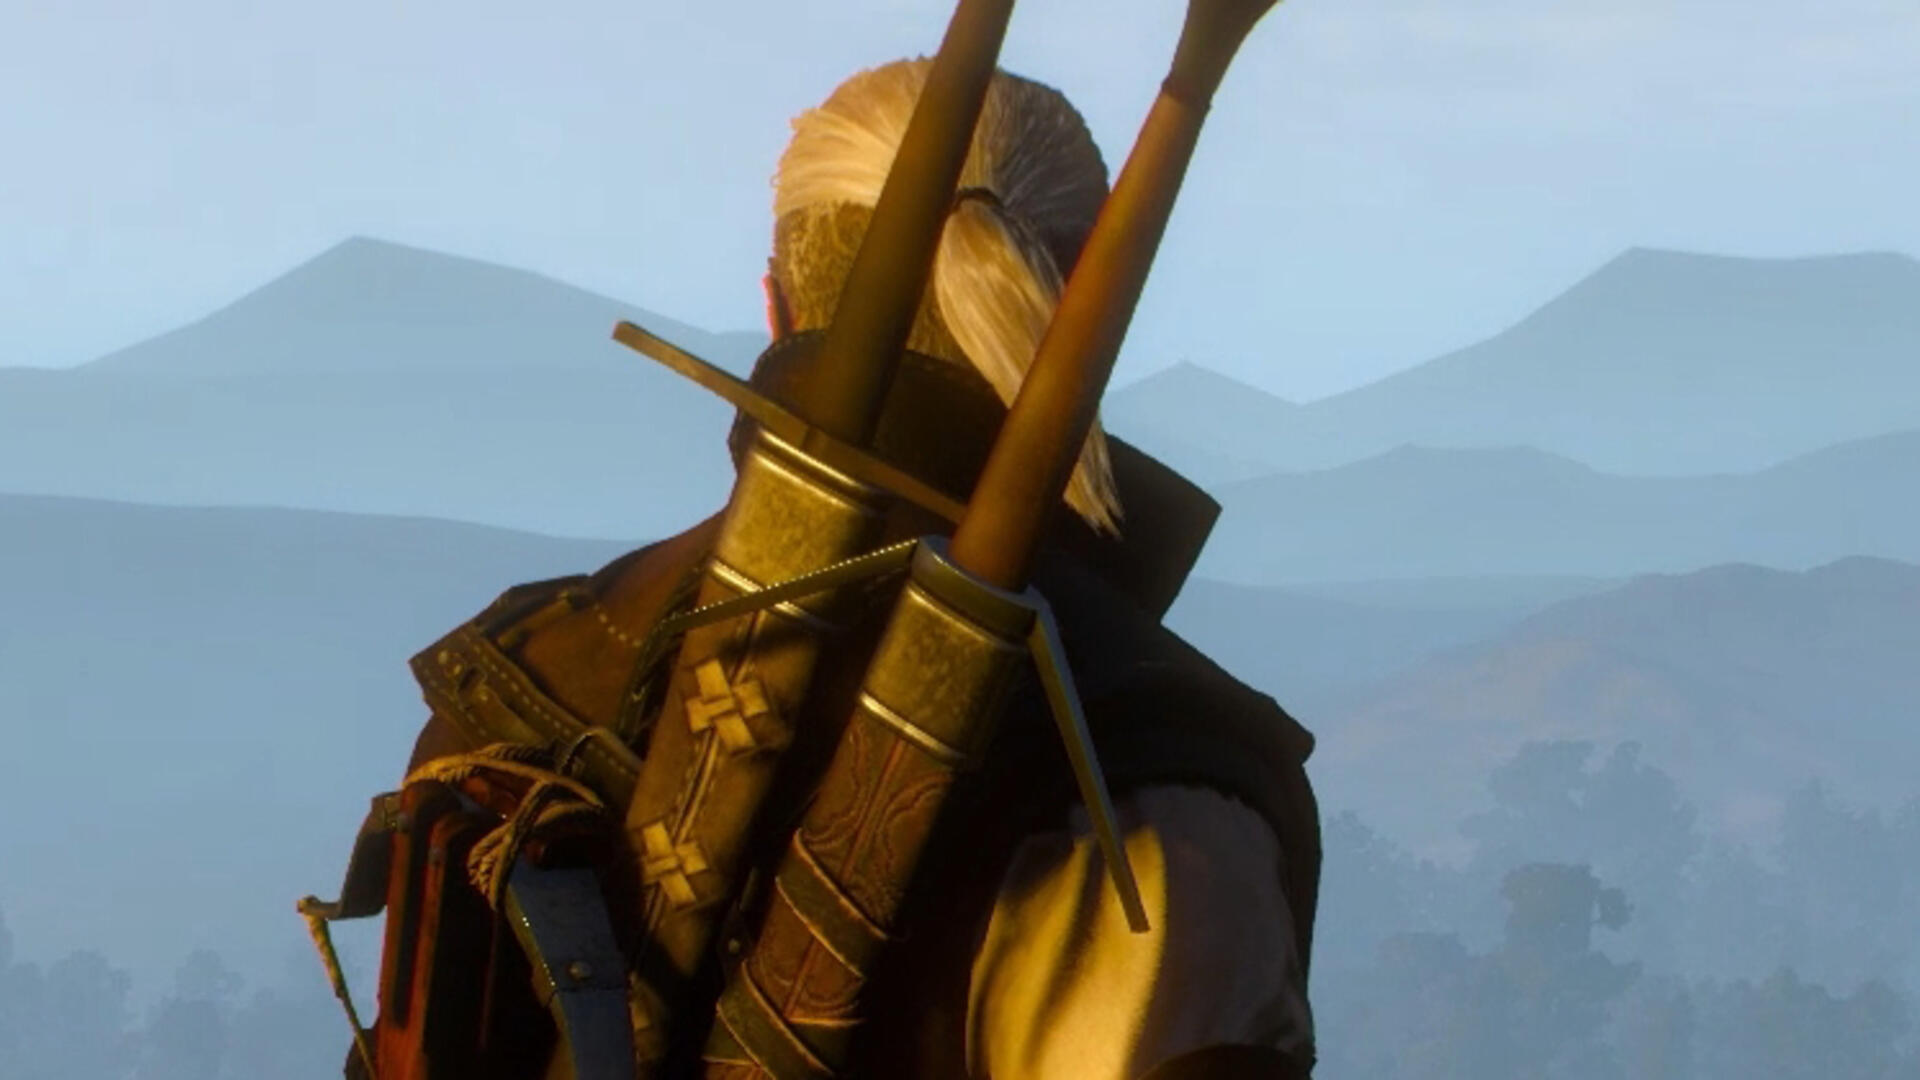 The Witcher 3 Griffin School Armor - Where to Find the Griffin School Gear